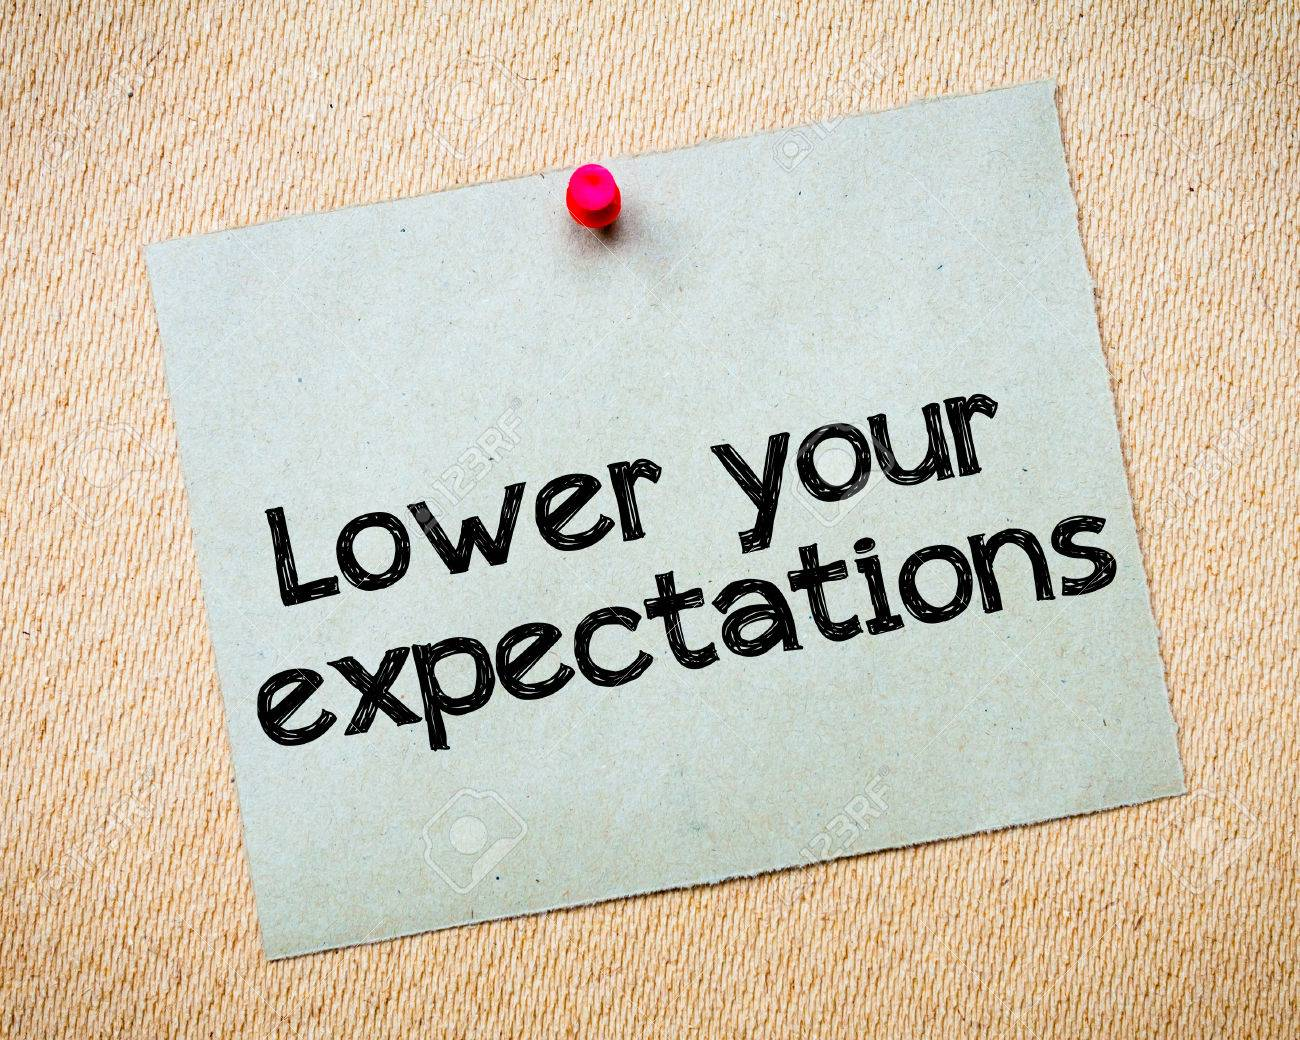 lower your expectations message recycled paper note pinned on lower your expectations message recycled paper note pinned on cork board concept image stock